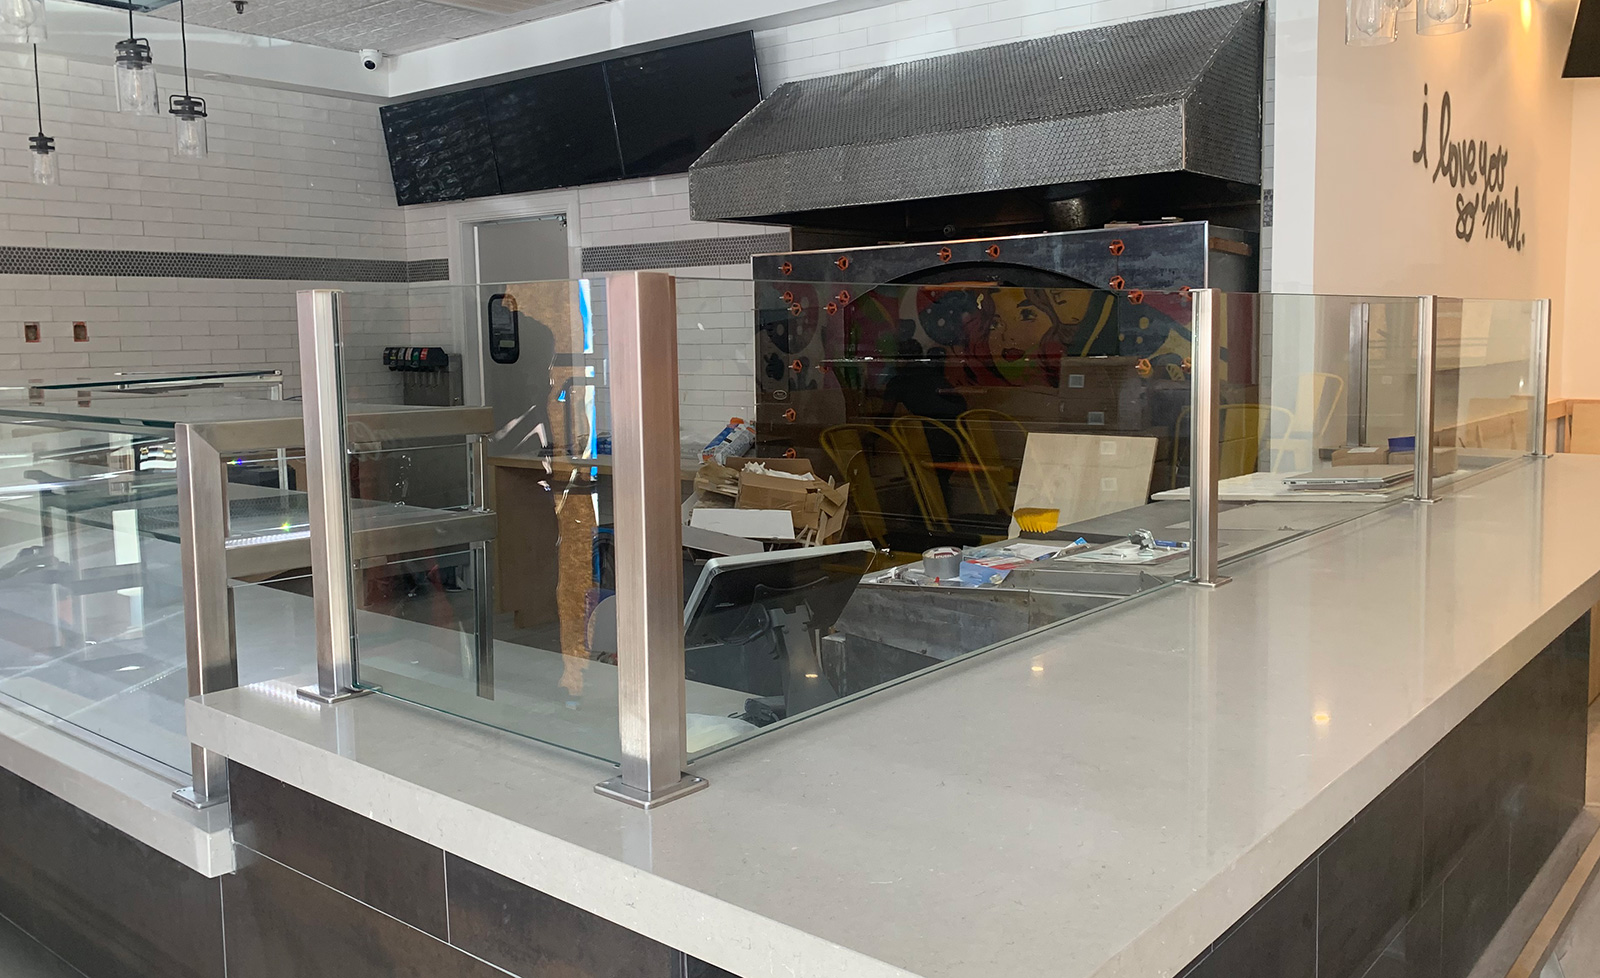 Satin Stainless Steel Food Shield with LED Lights | Pizzabar 141 - Woodbury, NY